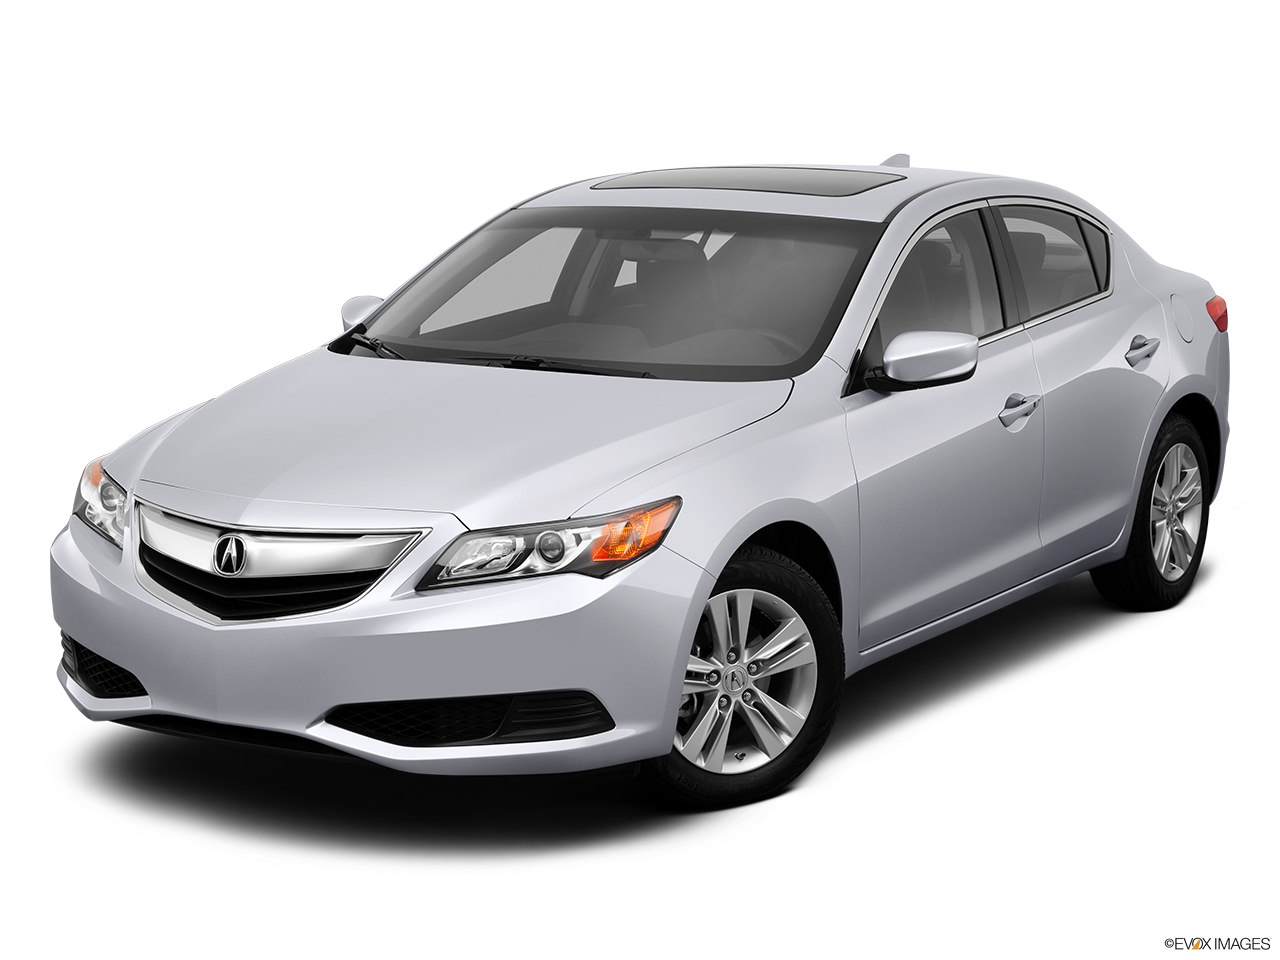 Acura Certified Pre-Owned (CPO) Car Program